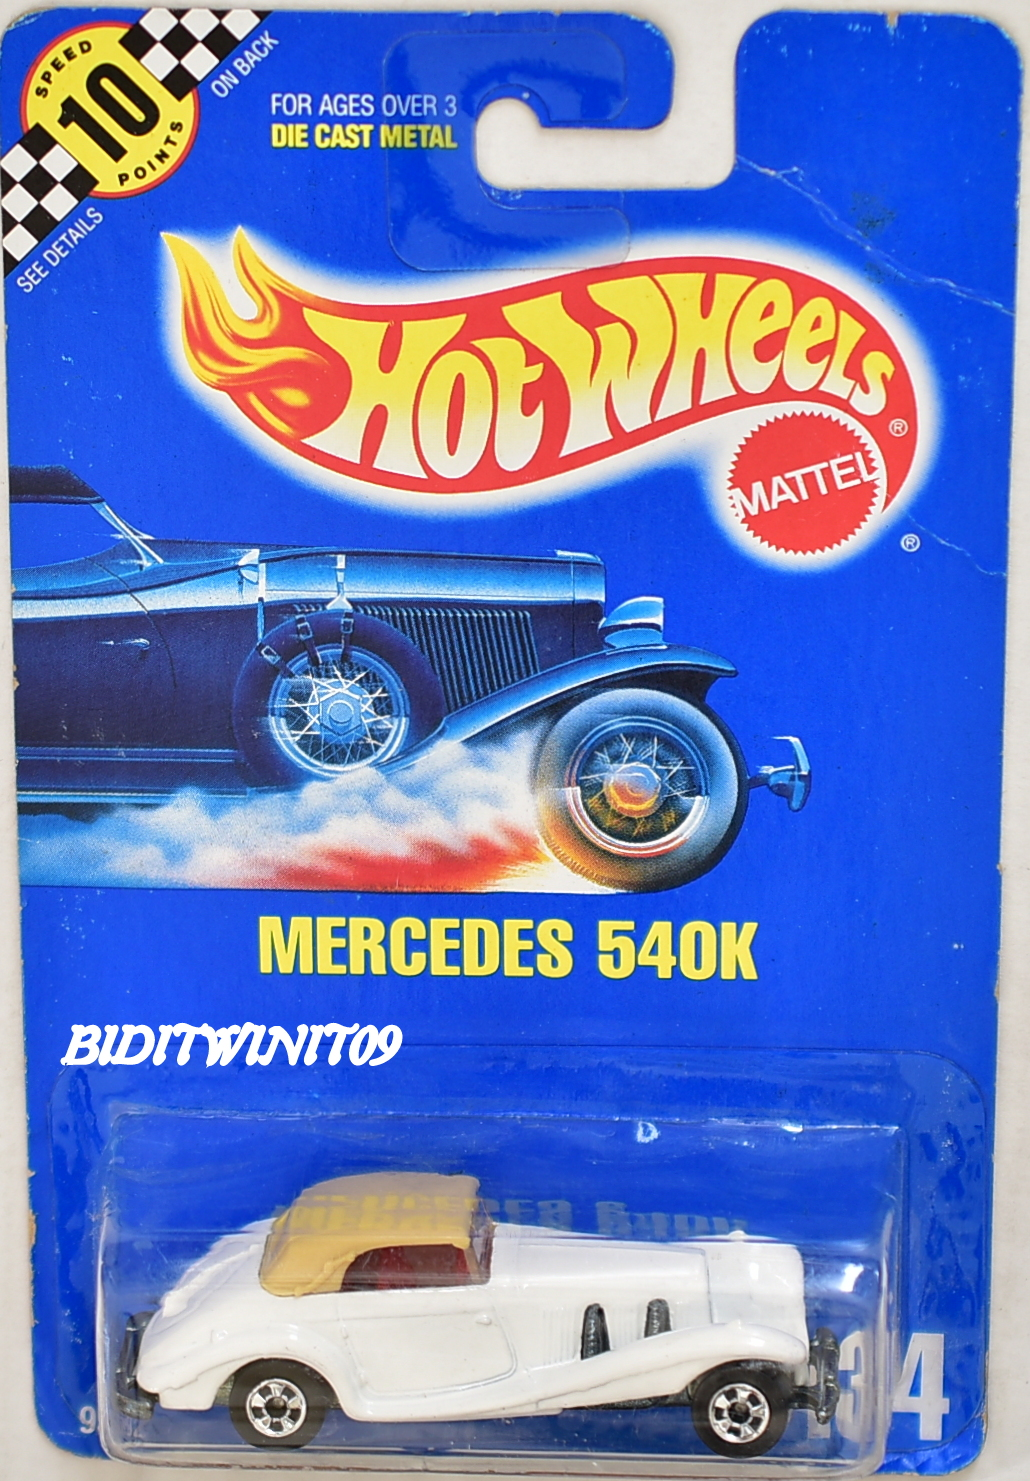 HOT WHEELS 1990 BLUE CARD MERCEDES 540K #134 WHITE NO GRILL - ERROR E+